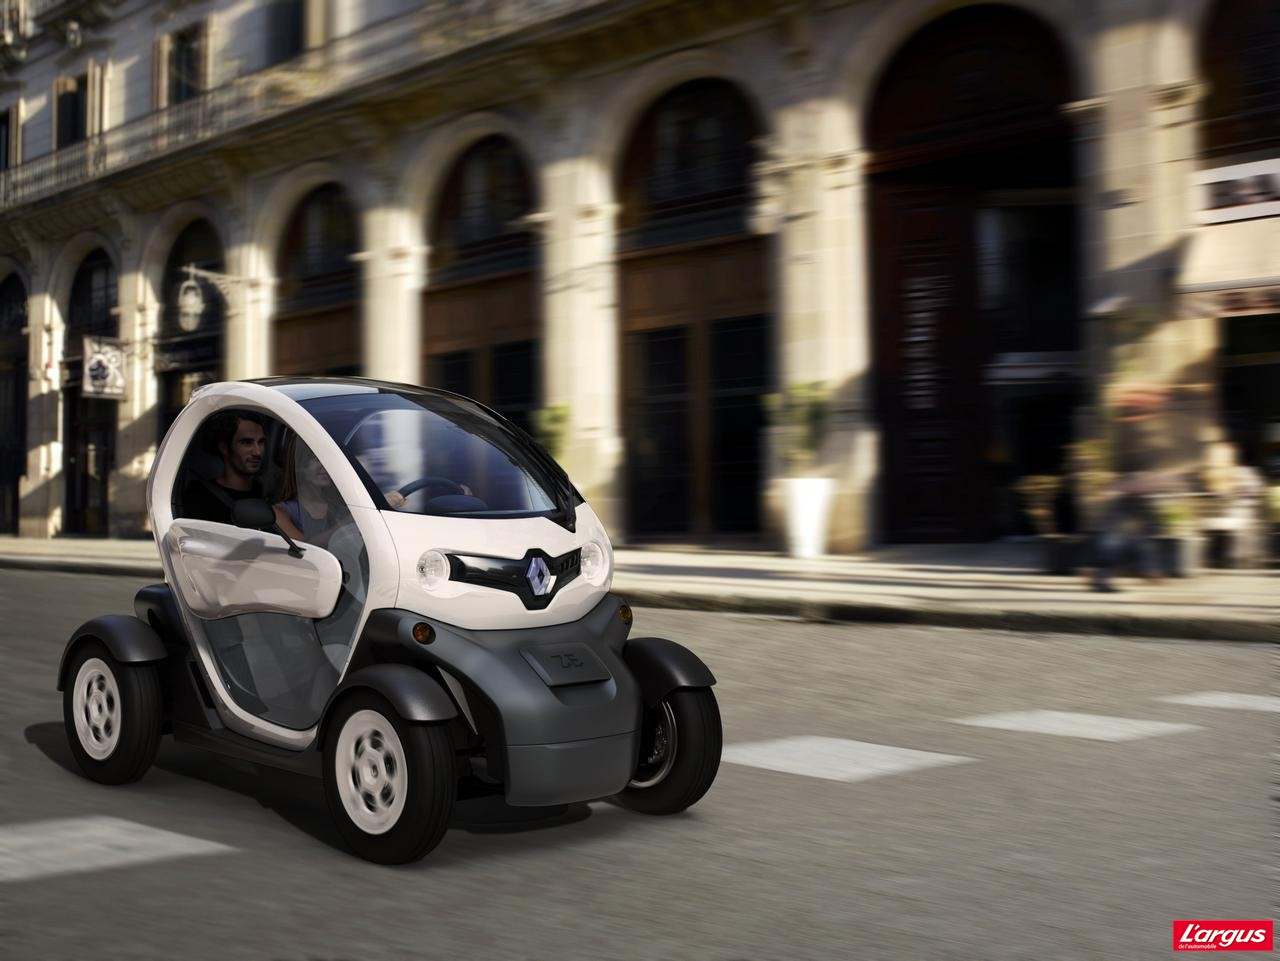 renault twizy tarifs d voil s r servations ouvertes l 39 argus. Black Bedroom Furniture Sets. Home Design Ideas